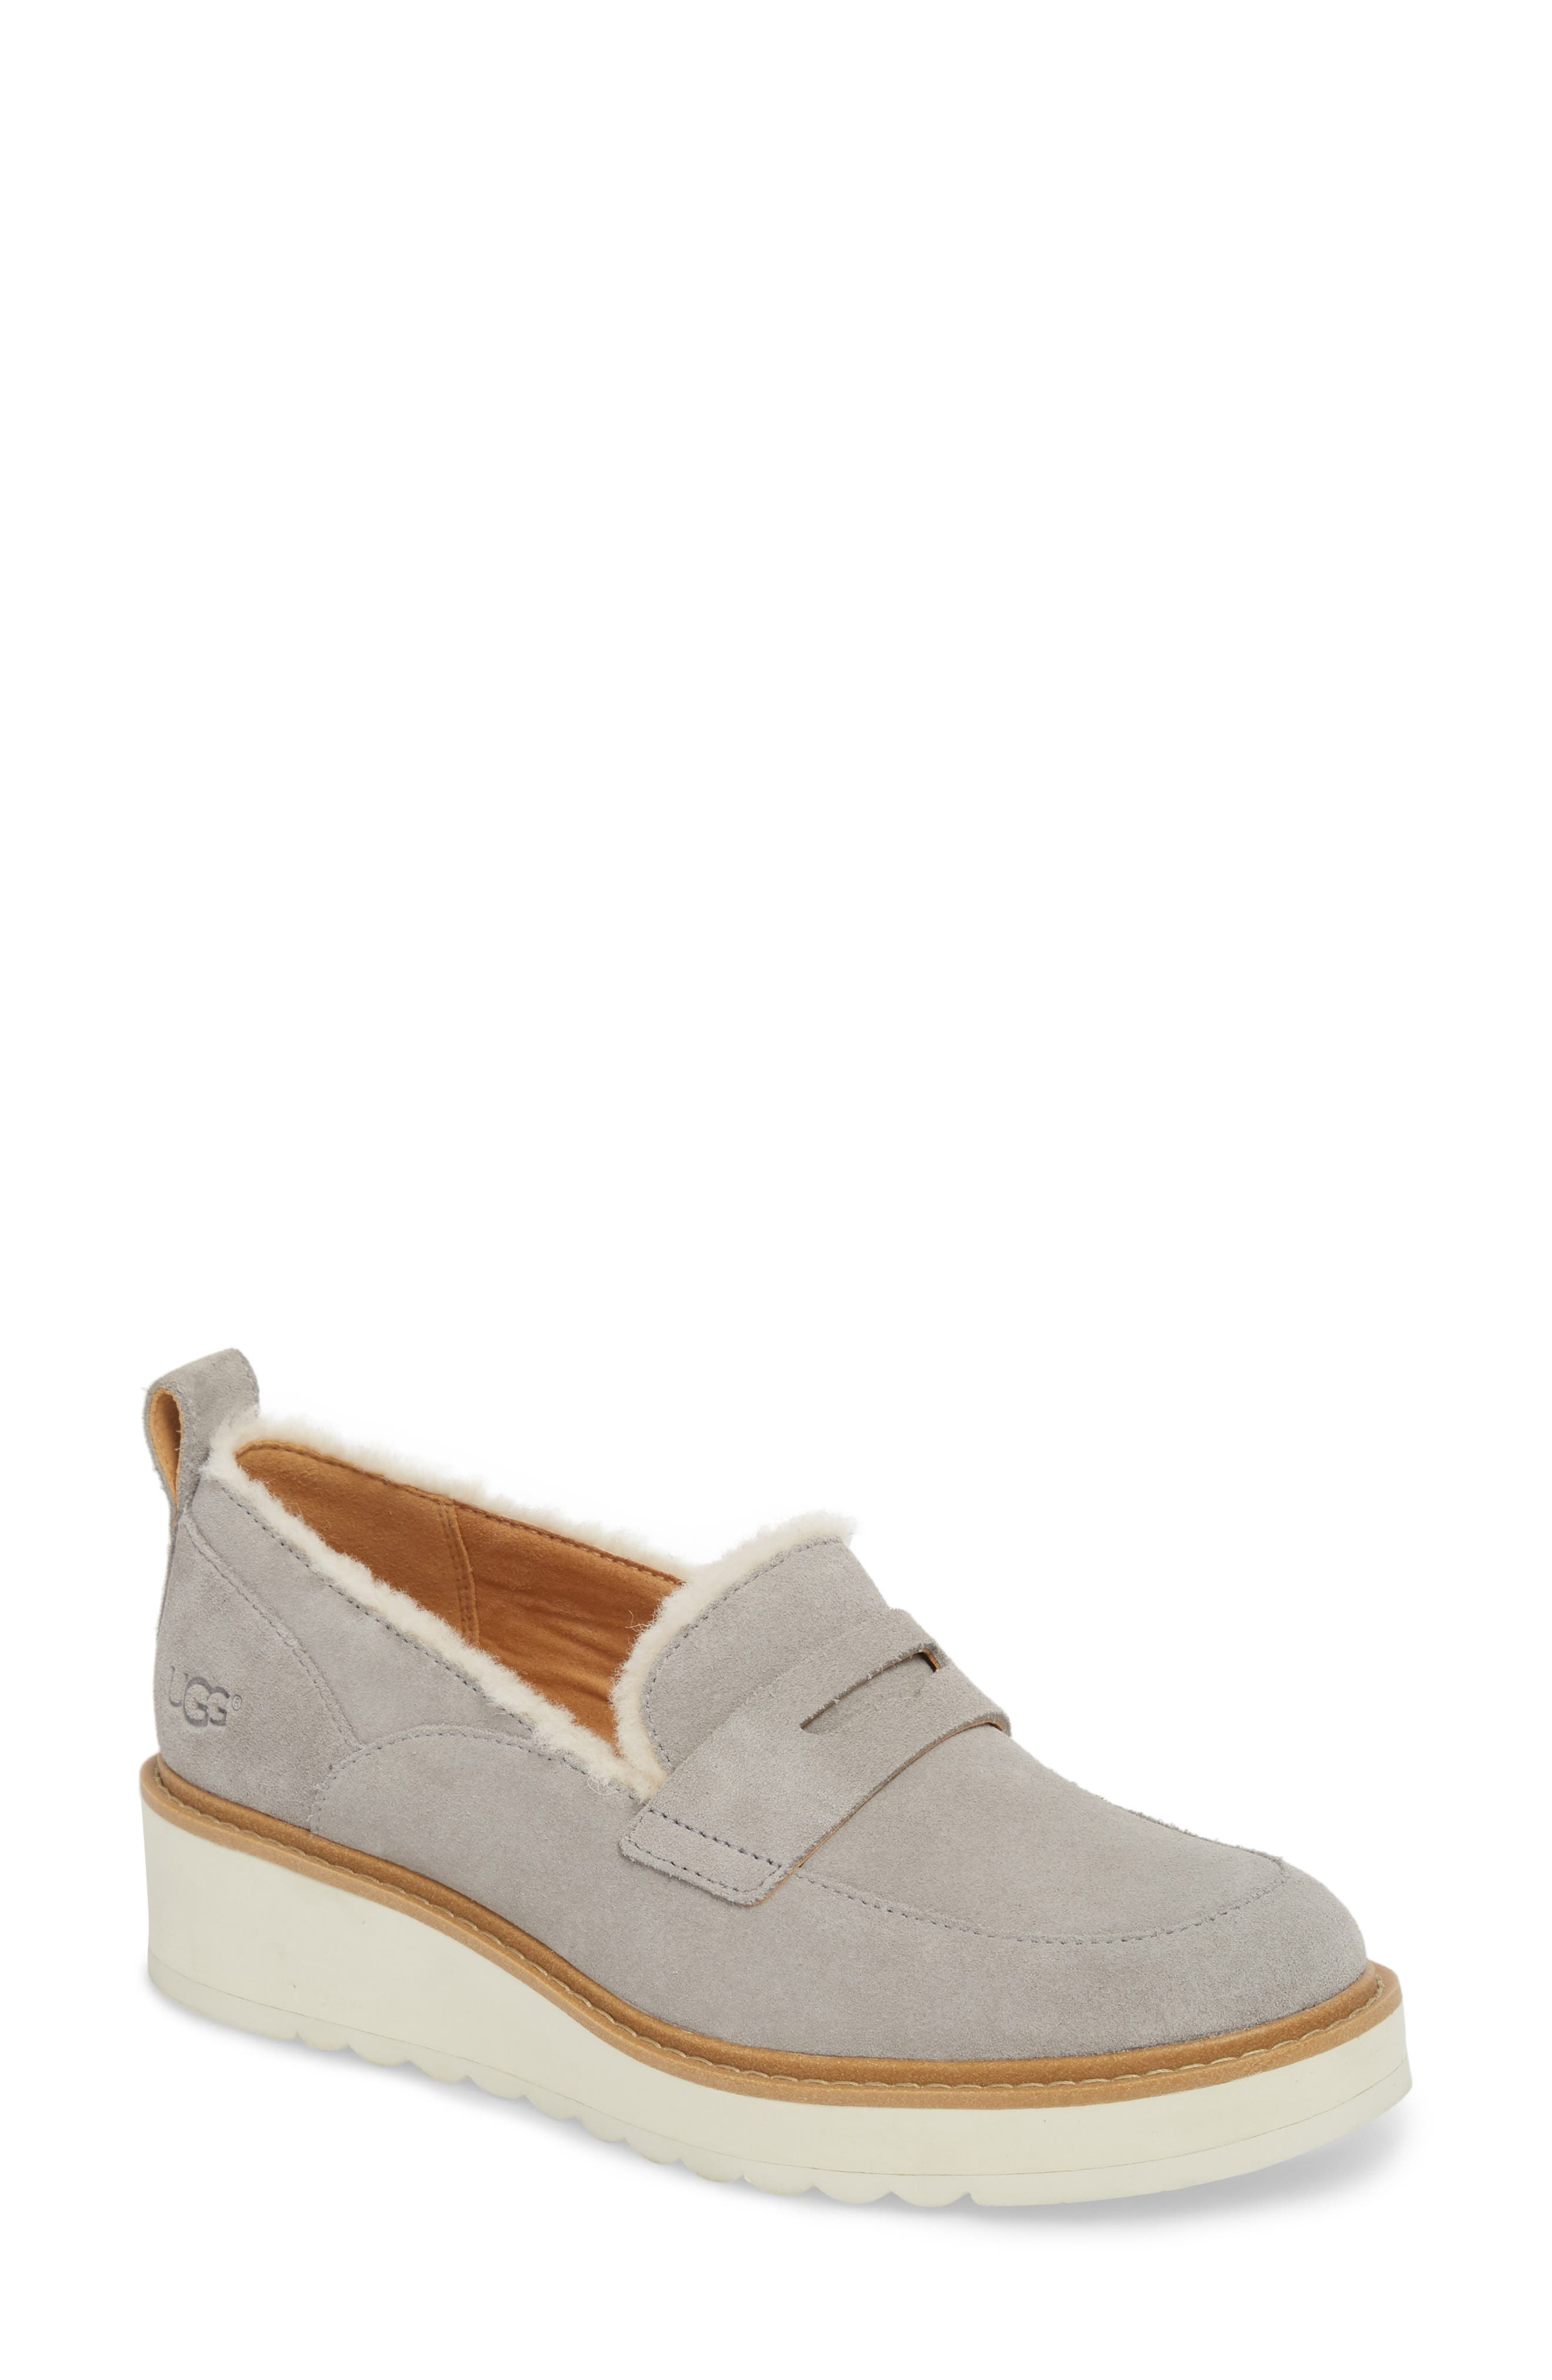 Ugg Atwater Spill Seam Wedge Loafer, Grey